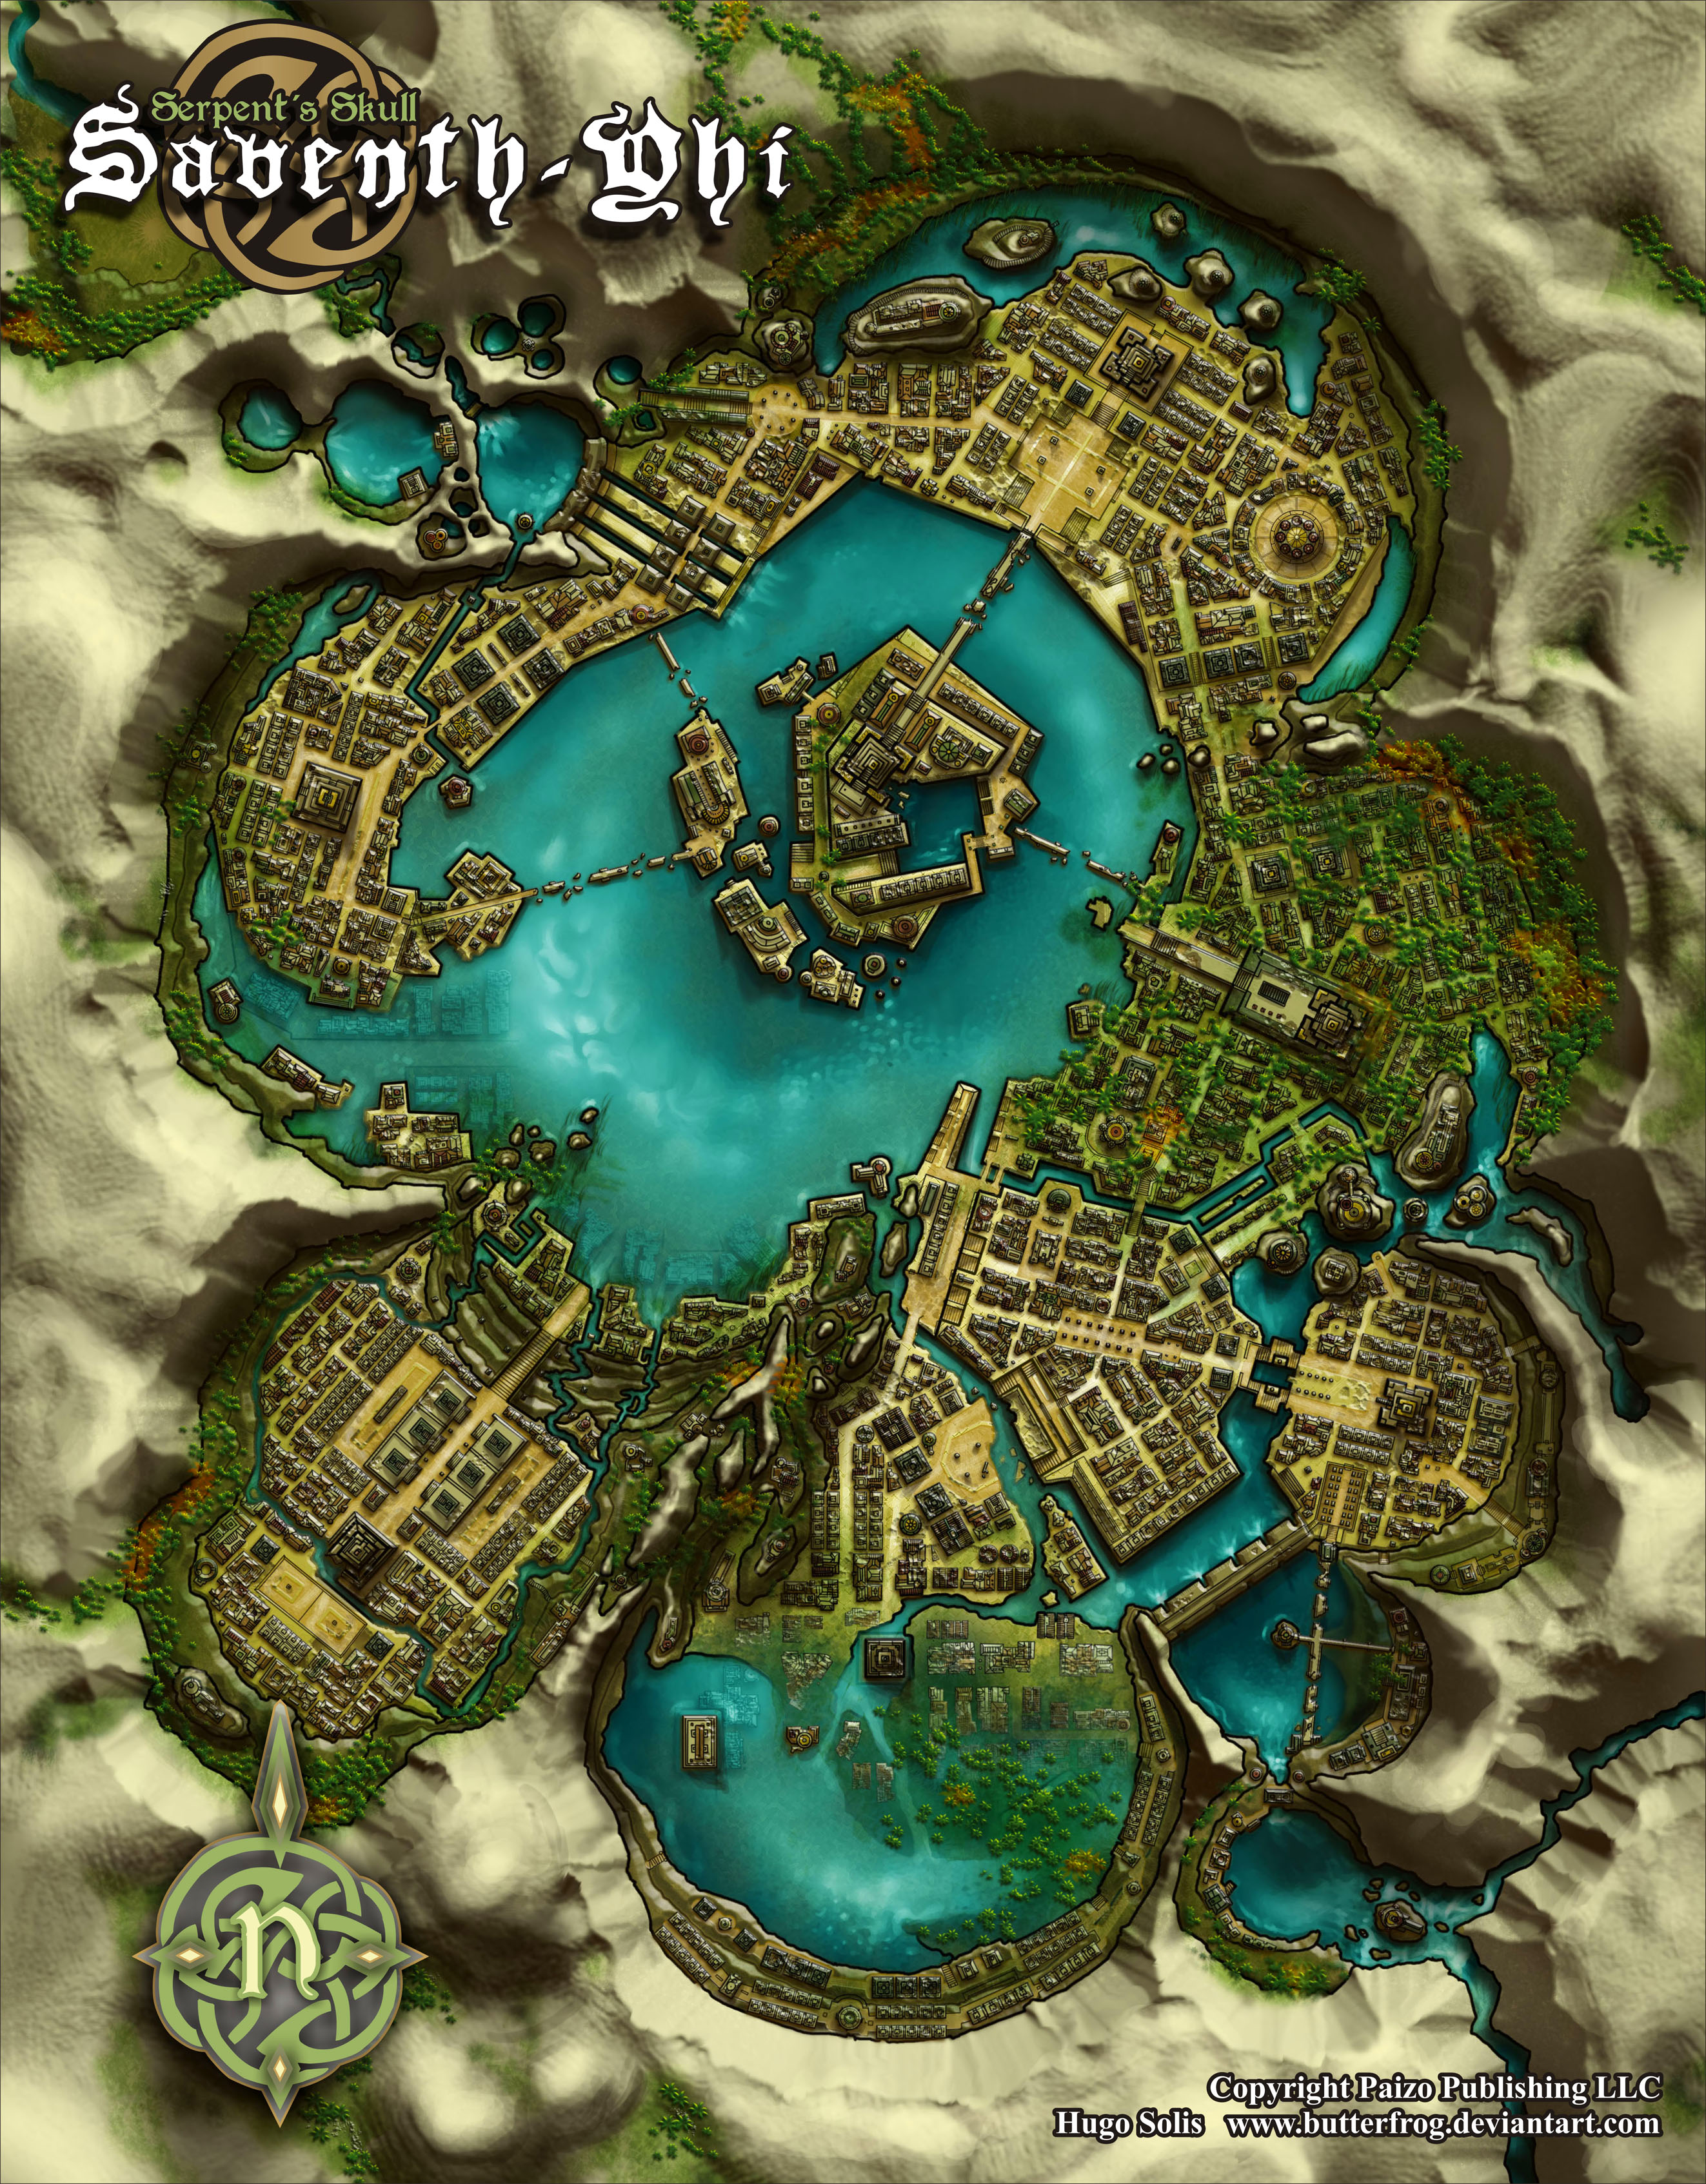 """Saventh Yhi  Copyright Paizo Publishing LLC.  The name of the city means """"The City of the Seven Spear"""" on an old Golarion dialect (Aztlani?). This city is the equivalent of El Dorado in the Pathfidner roleplaying game. This one is for the AP Serpent's Skull and appeared on the #3 issue.  The biggest changes in final version of the map, Rob's version, are that the city surrounded by colorful trees and has his neat hand-made look.  As Pitax, this one was a city design only but this time James Jacobs asked me to do a """"final"""" map, all neatly finished and shiny. You can see the difference as this one has sharper colors and nice and crispy """"inked""""outline, thou I didn't had any key names or any other detail except the name of the wards, which was pretty much generic. This map had one BIG requirement: it needed seven spots/temples that were to match a city that lied exatly undertneath this one. The other only points/requirements I was asked for was that one ward was """"isolated"""" from the other districts by mountains and accesible by mountain trails, that the central isle was removed from the main land by broken bridges, that one district were overrun by jungle. Everything else was left up to me.  My original idea was to have this city entirely out of city carved into a huge rock mountain worn down by running and filtering water. You could say that the entire city lies in a single (fragmented maybe) block of stone, hence the scarce vegetation on top and on the cliffs, that was my excuse for the city to be """"lost"""" and not easely accesible other than walking into it inside one of the rives that run into this basin throug carved out rived caves and tunnels, if you see one of the rives on the from the """"east"""" pops out of nowhere, that would be a cave. I added some round caves on the edges as to note some sort of """"cenotes"""" formation, round pools of deep running water which sometimes lie underneath the surface. Also, a main feature of the map are a couple BIG dams, which were used to """